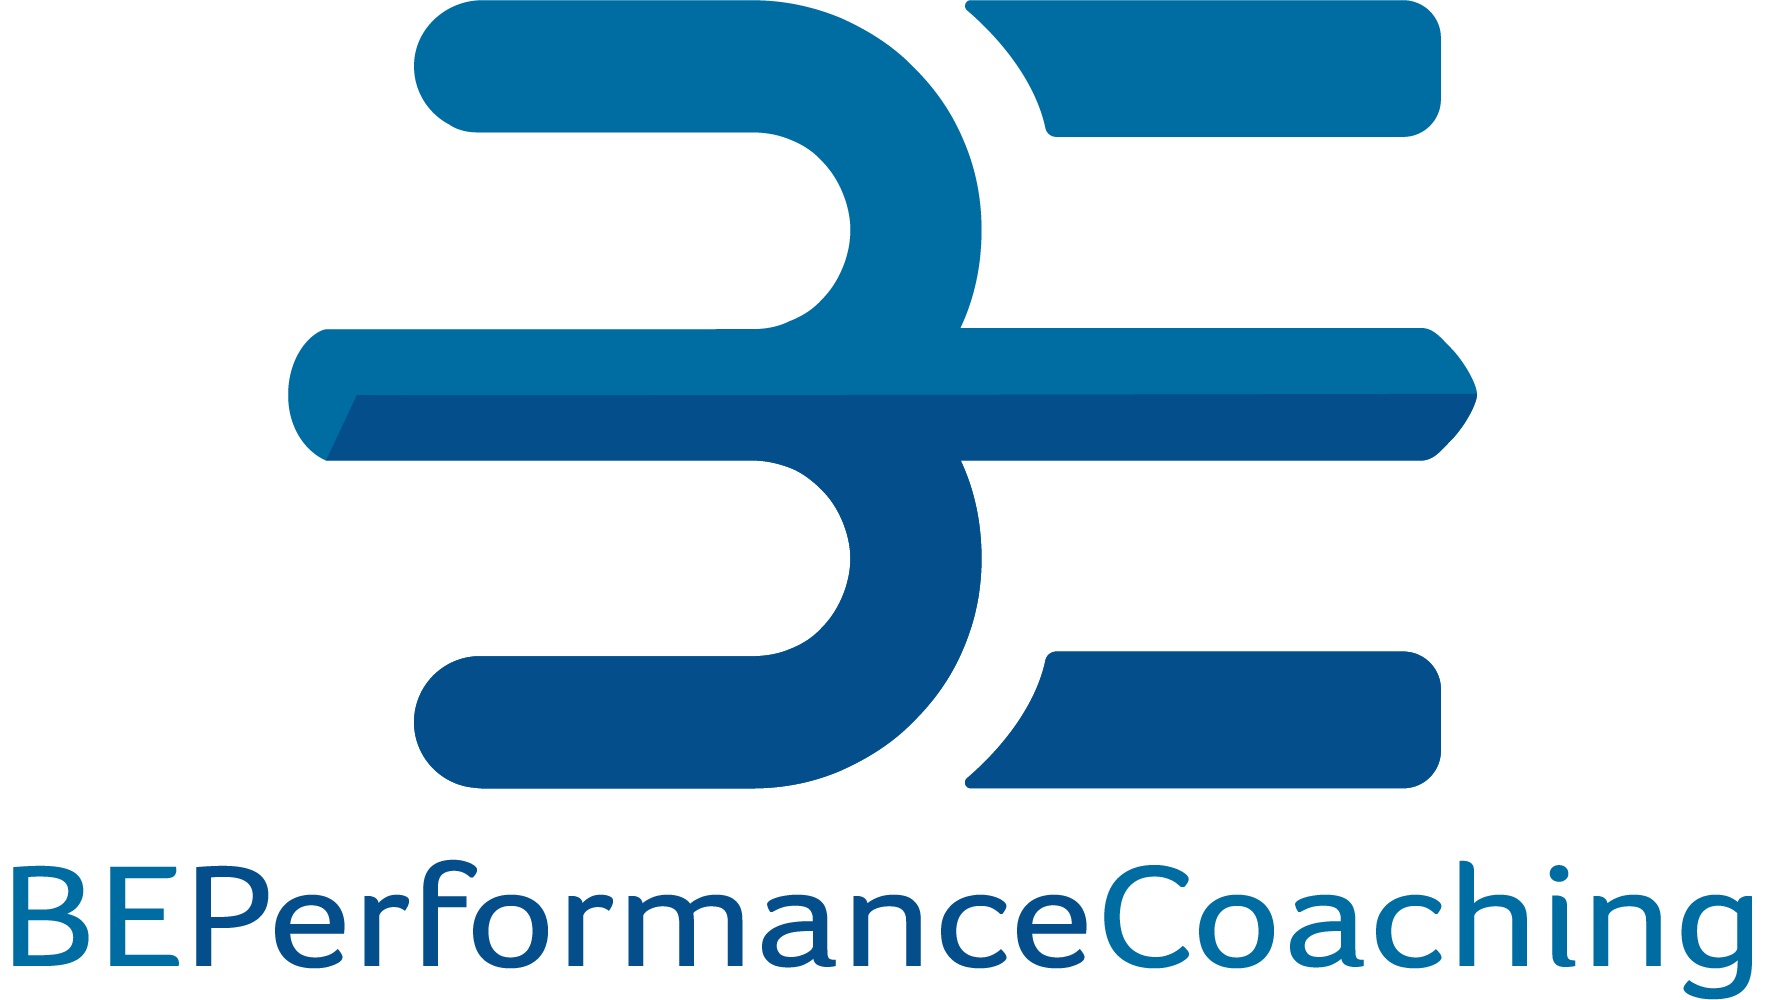 BE Performance Coaching